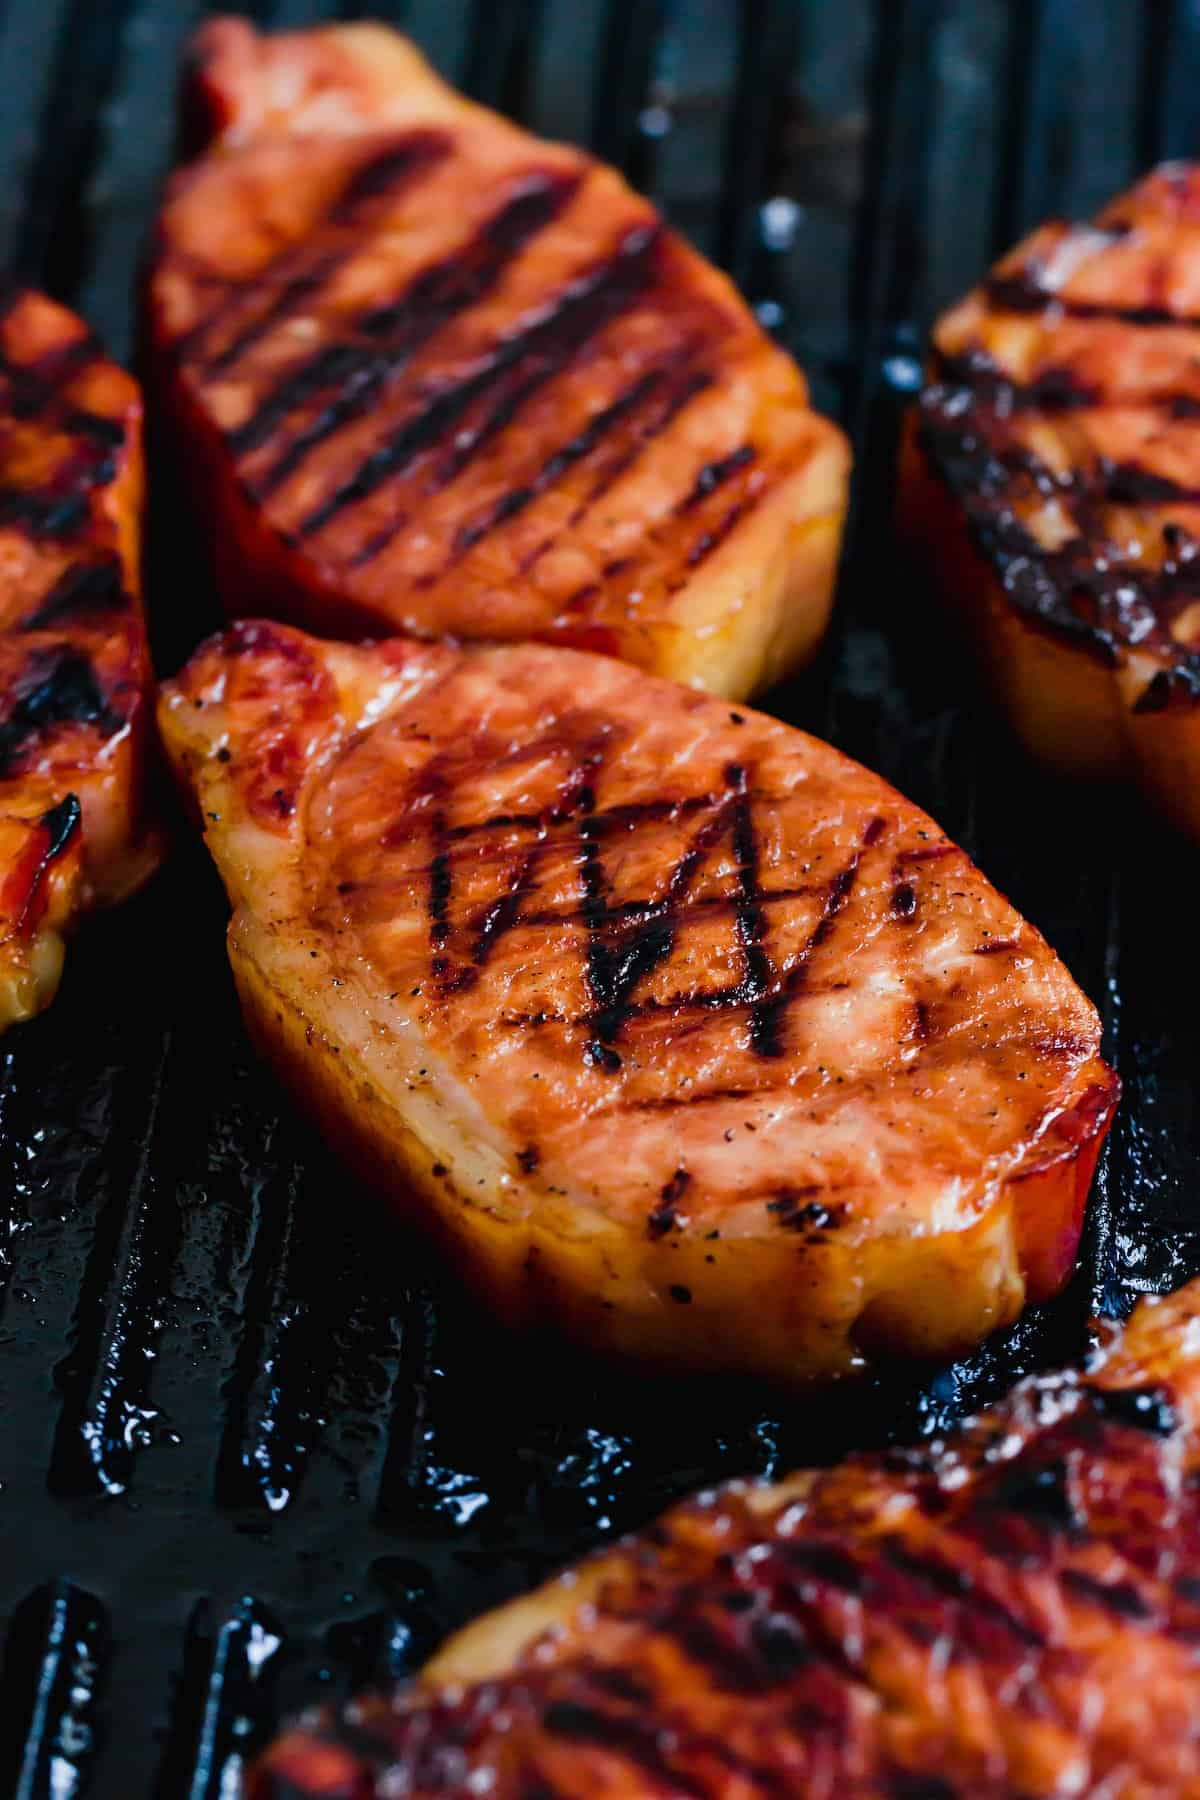 Pork chops on the grill.